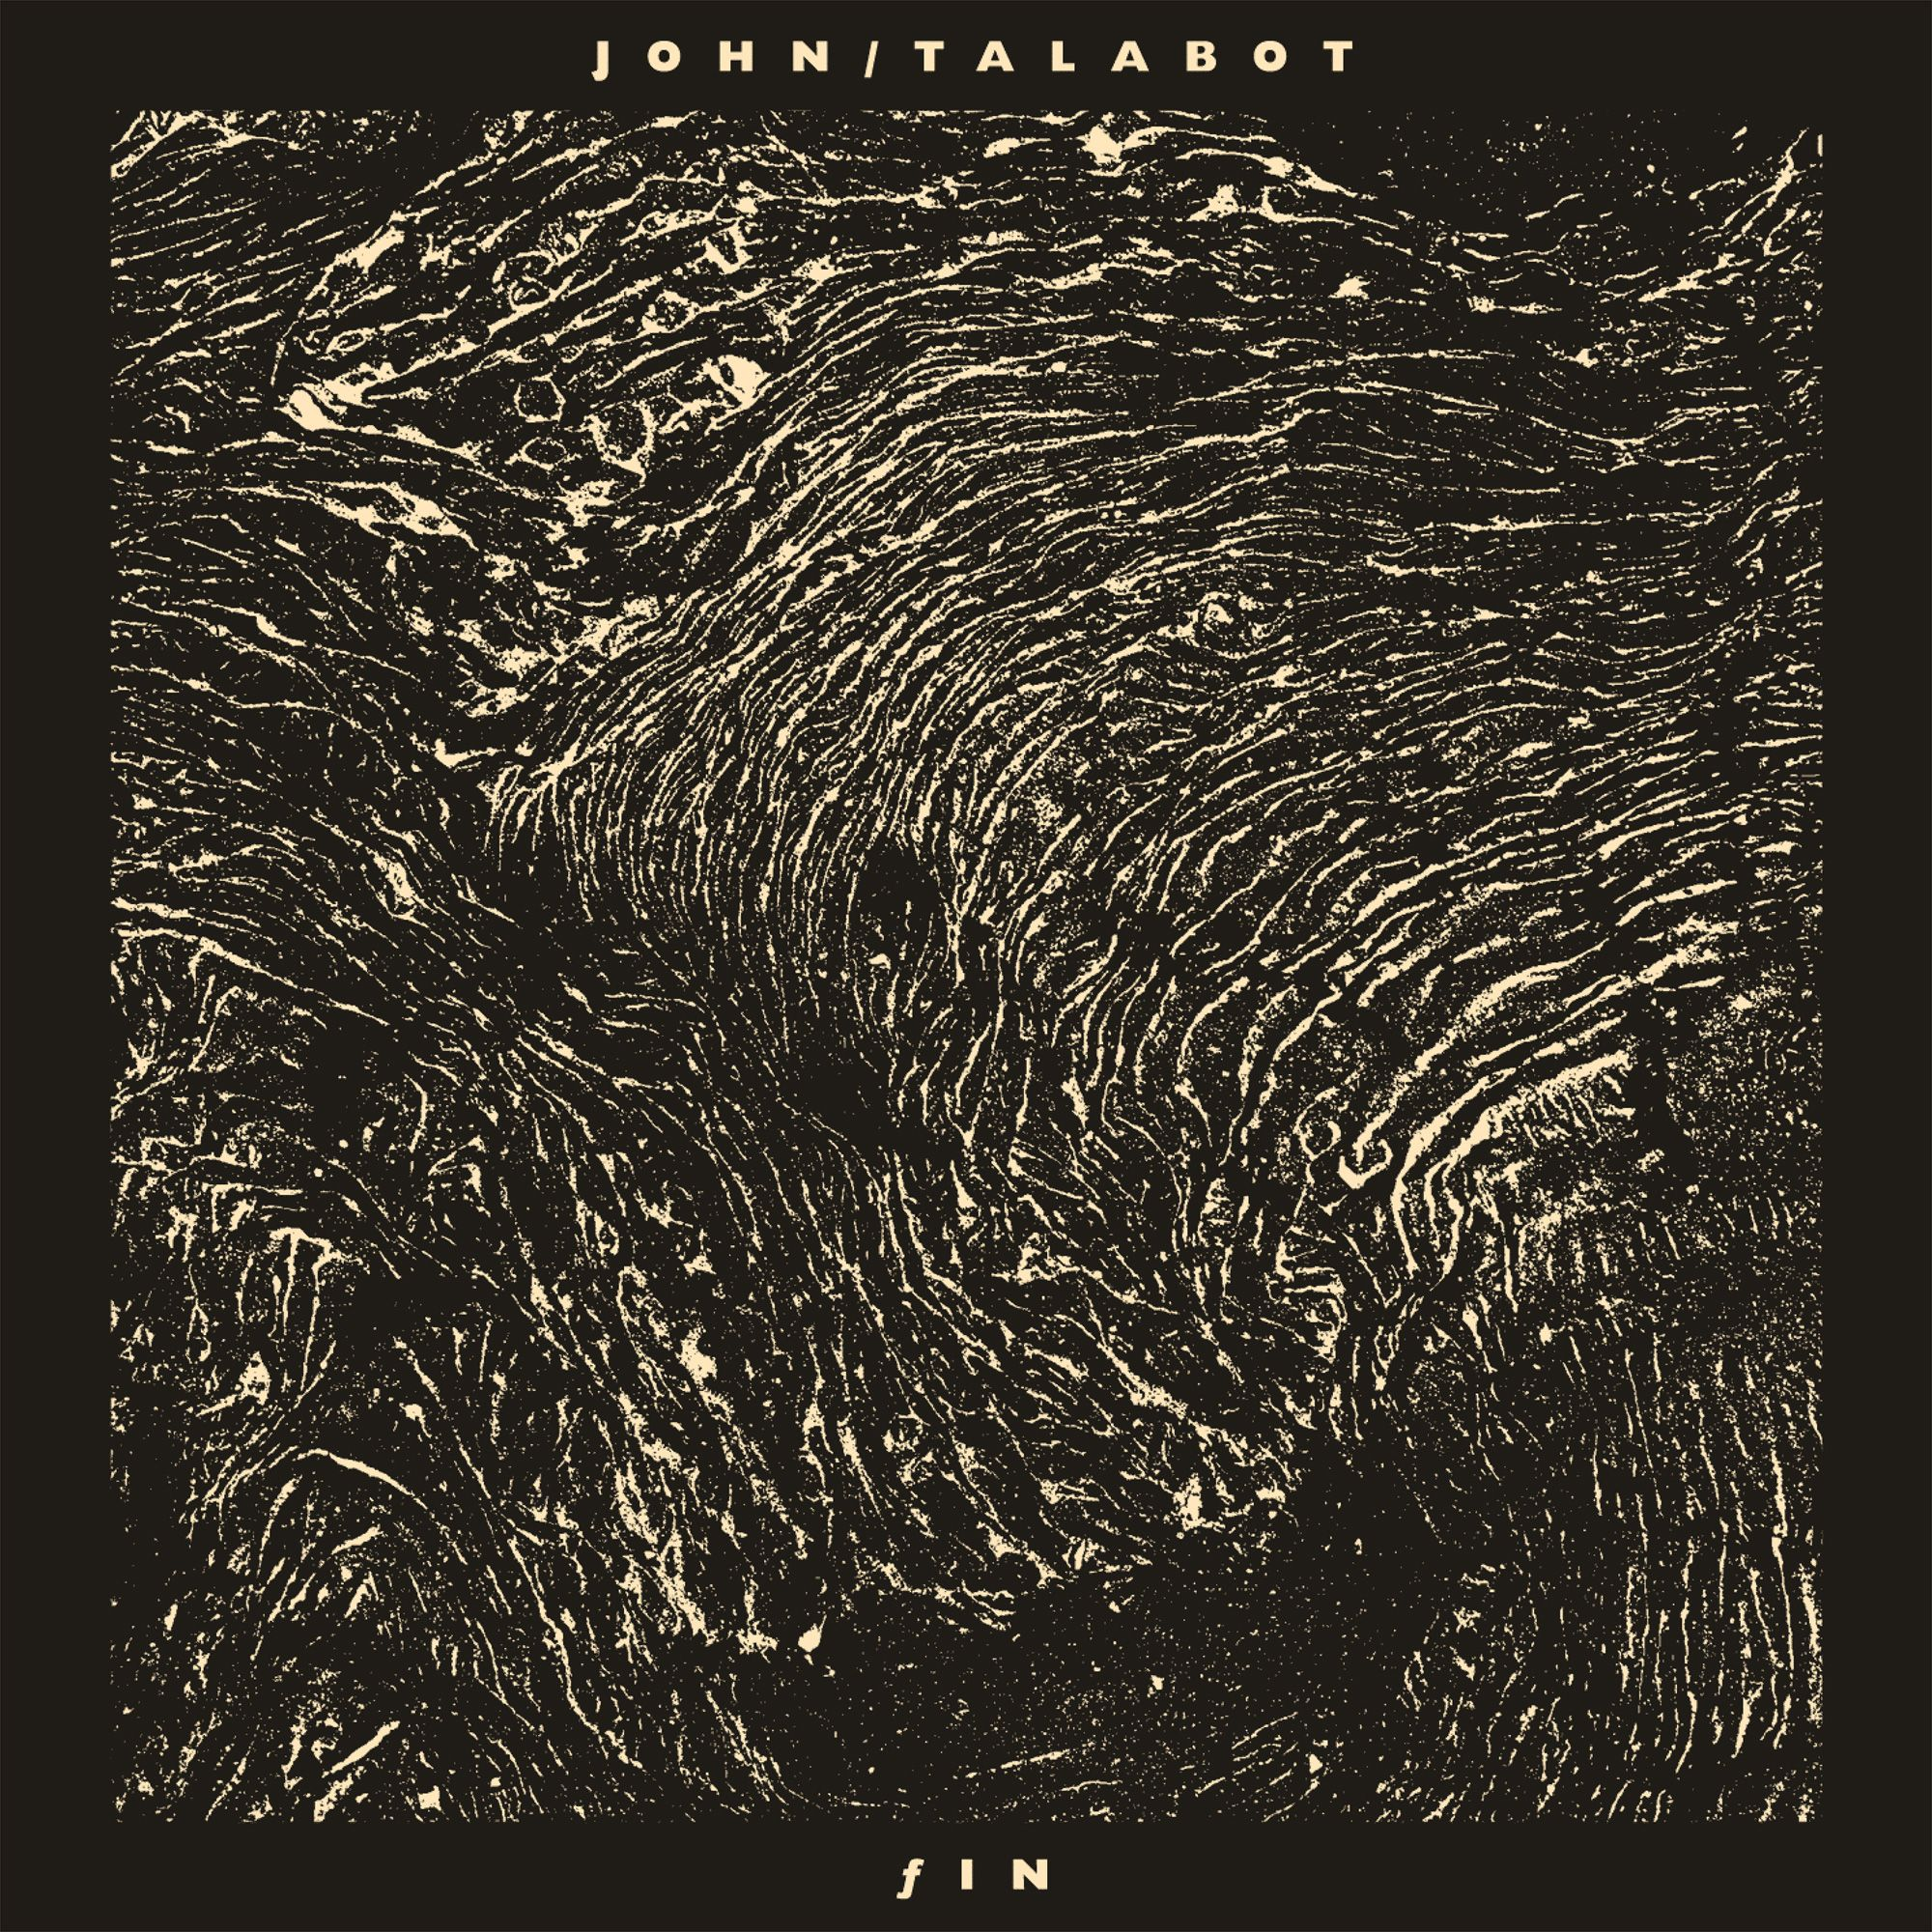 John Talabot - ƒin - 2012. Permanent Vacation. Artwork: Arnau Pi. Photography: Andriá Cañameras